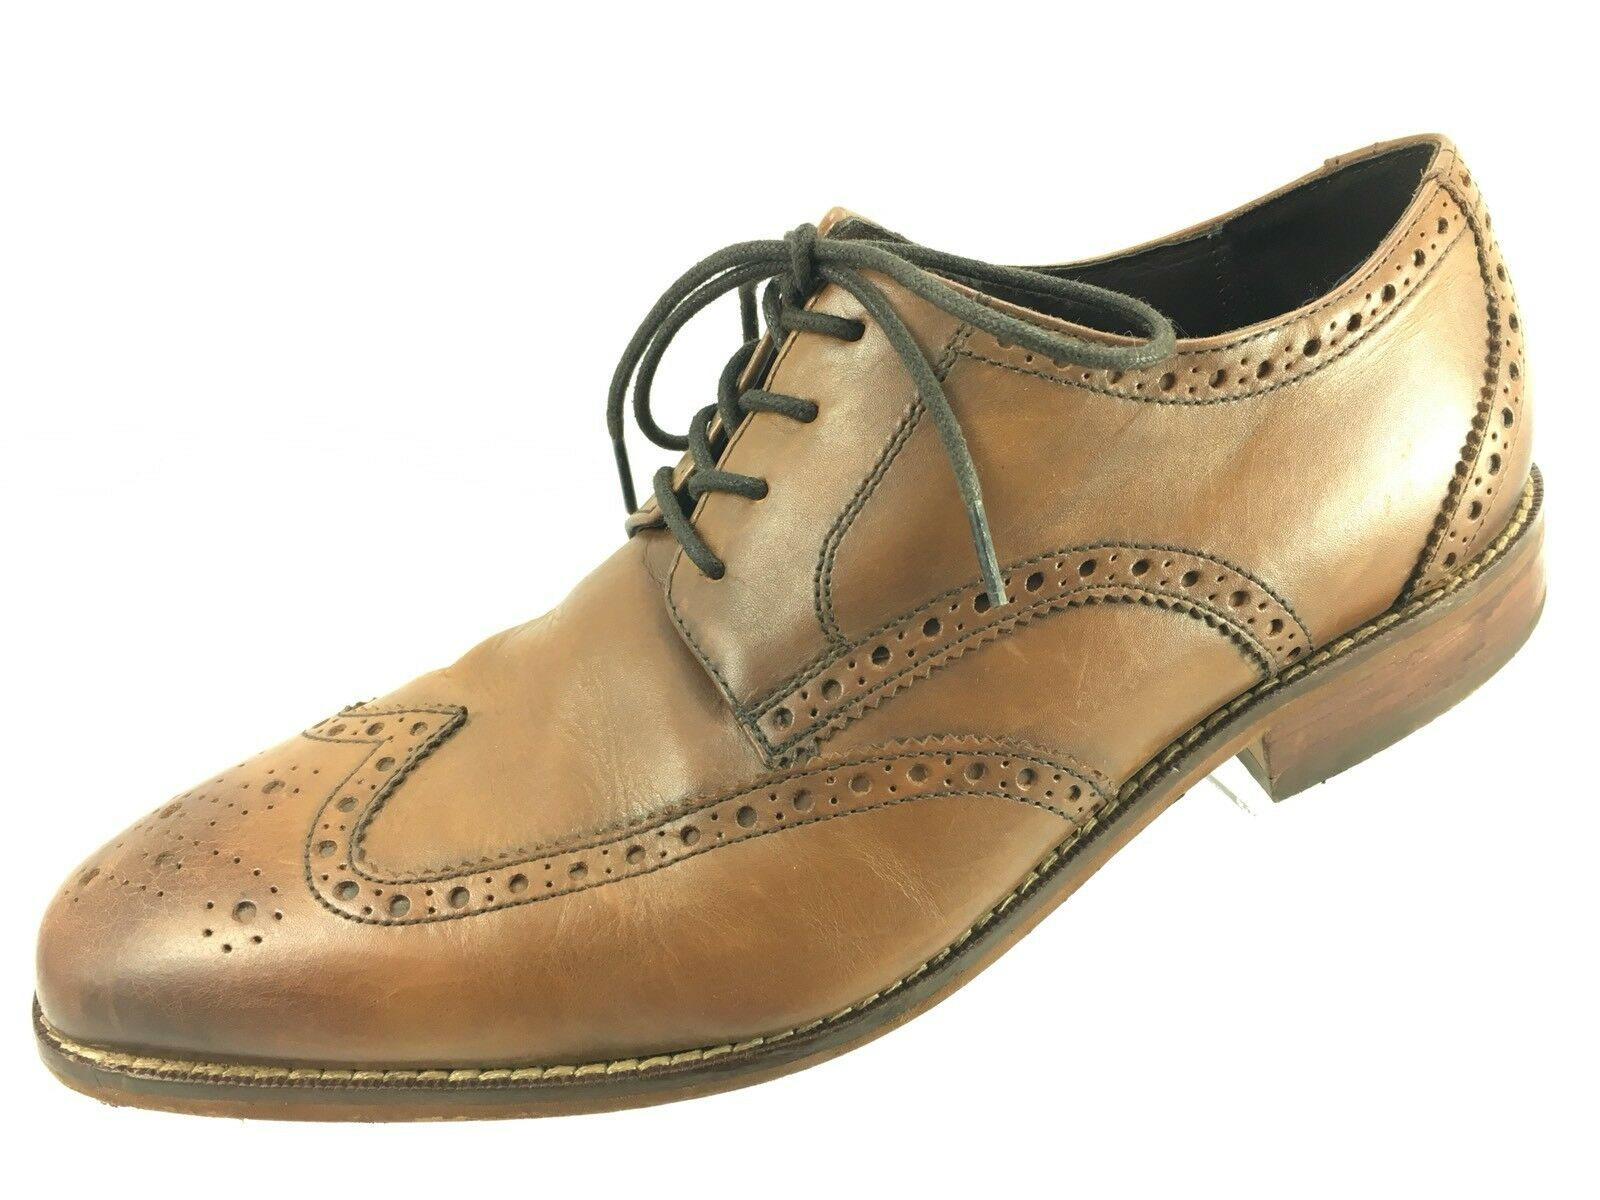 SH10 Florsheim 8D Light braun Leather Full Full Full Brogue Wing Tip Oxford Dress schuhe 215955